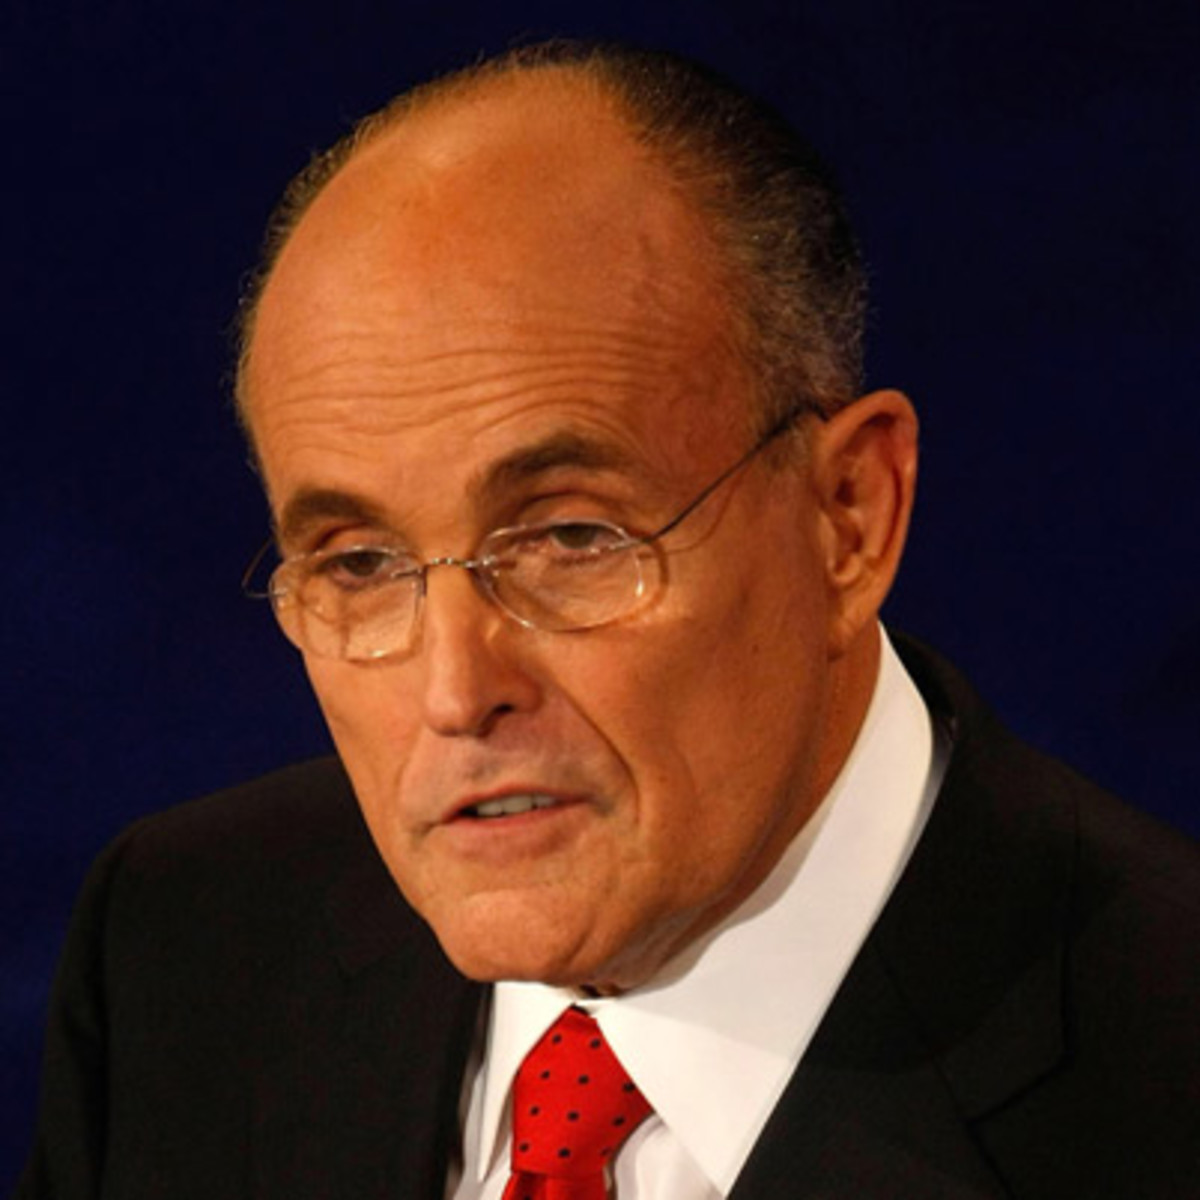 Rudolph Giuliani photo via Getty Images